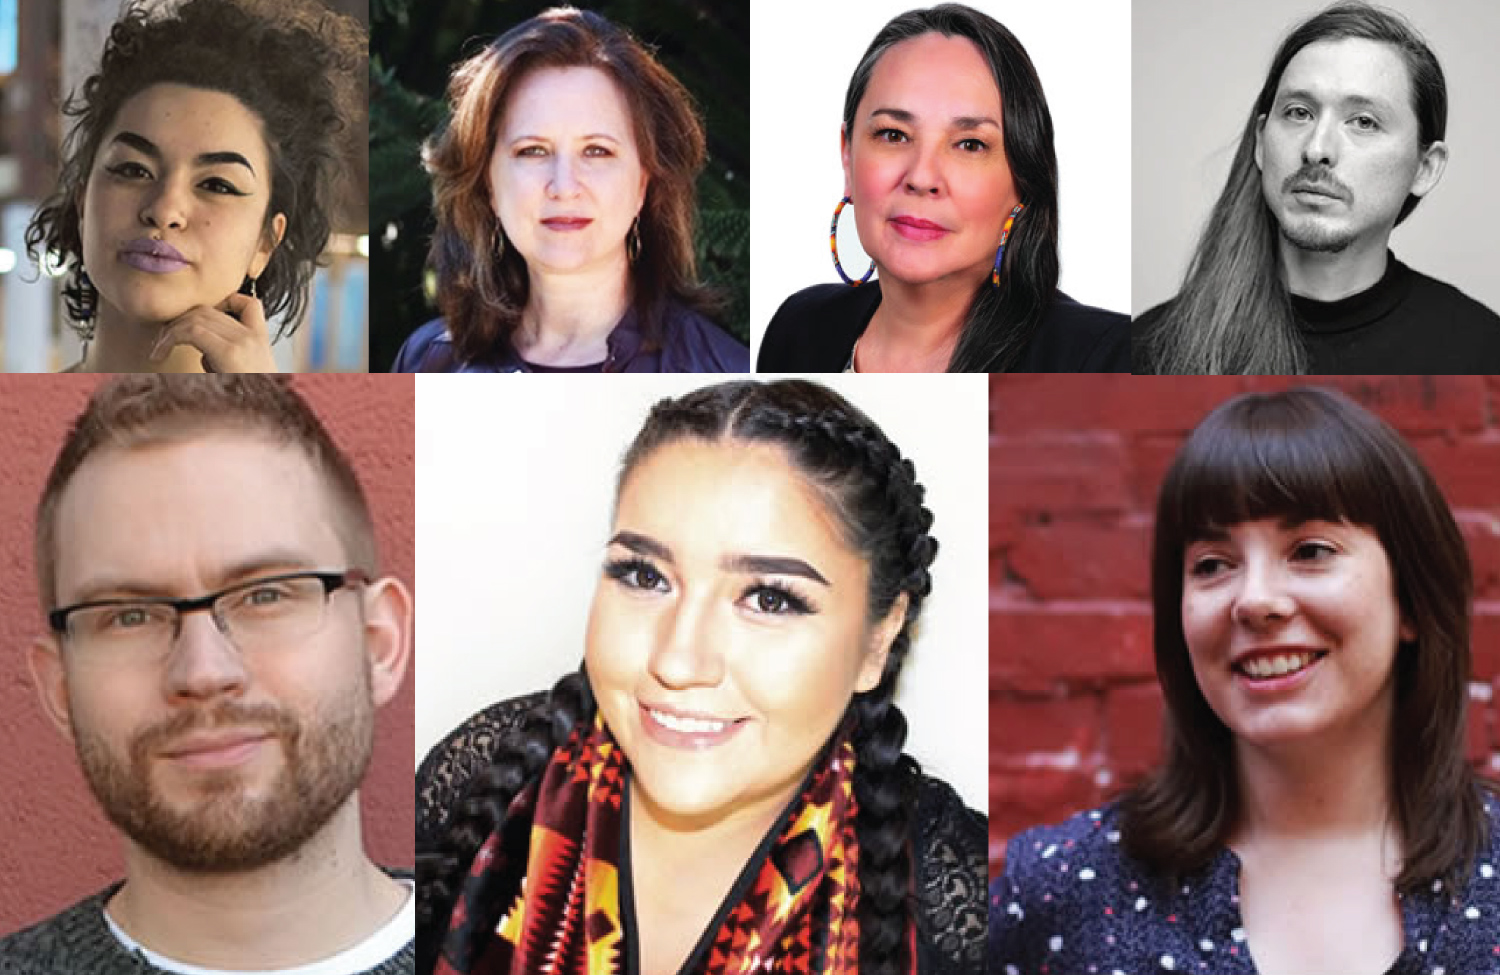 The Hnatyshyn Foundation announces $75,000 in awards for Canada's visual artists and curators